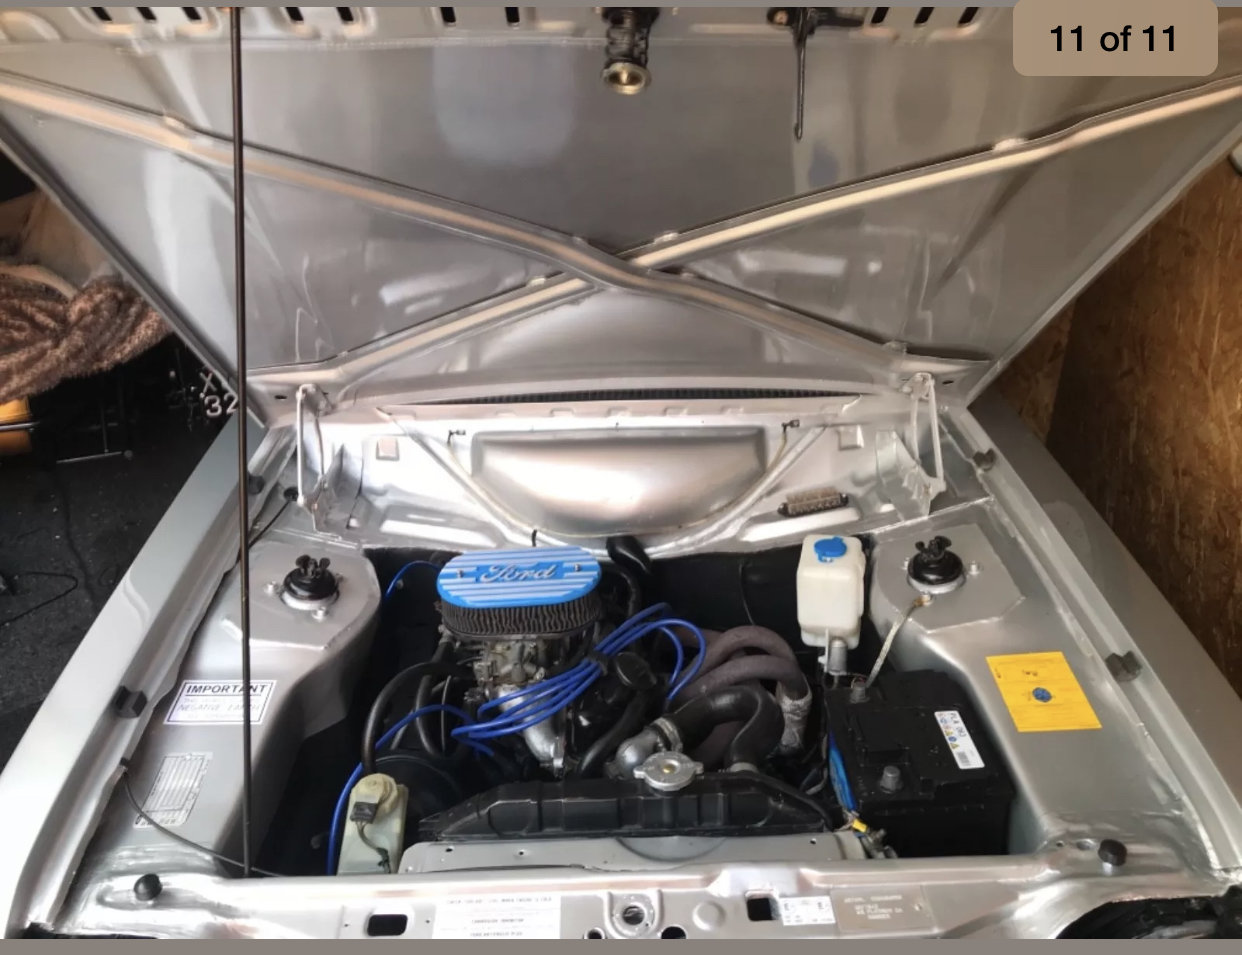 1980 Ford escort harrier 1600cc, strato silver For Sale (picture 4 of 6)